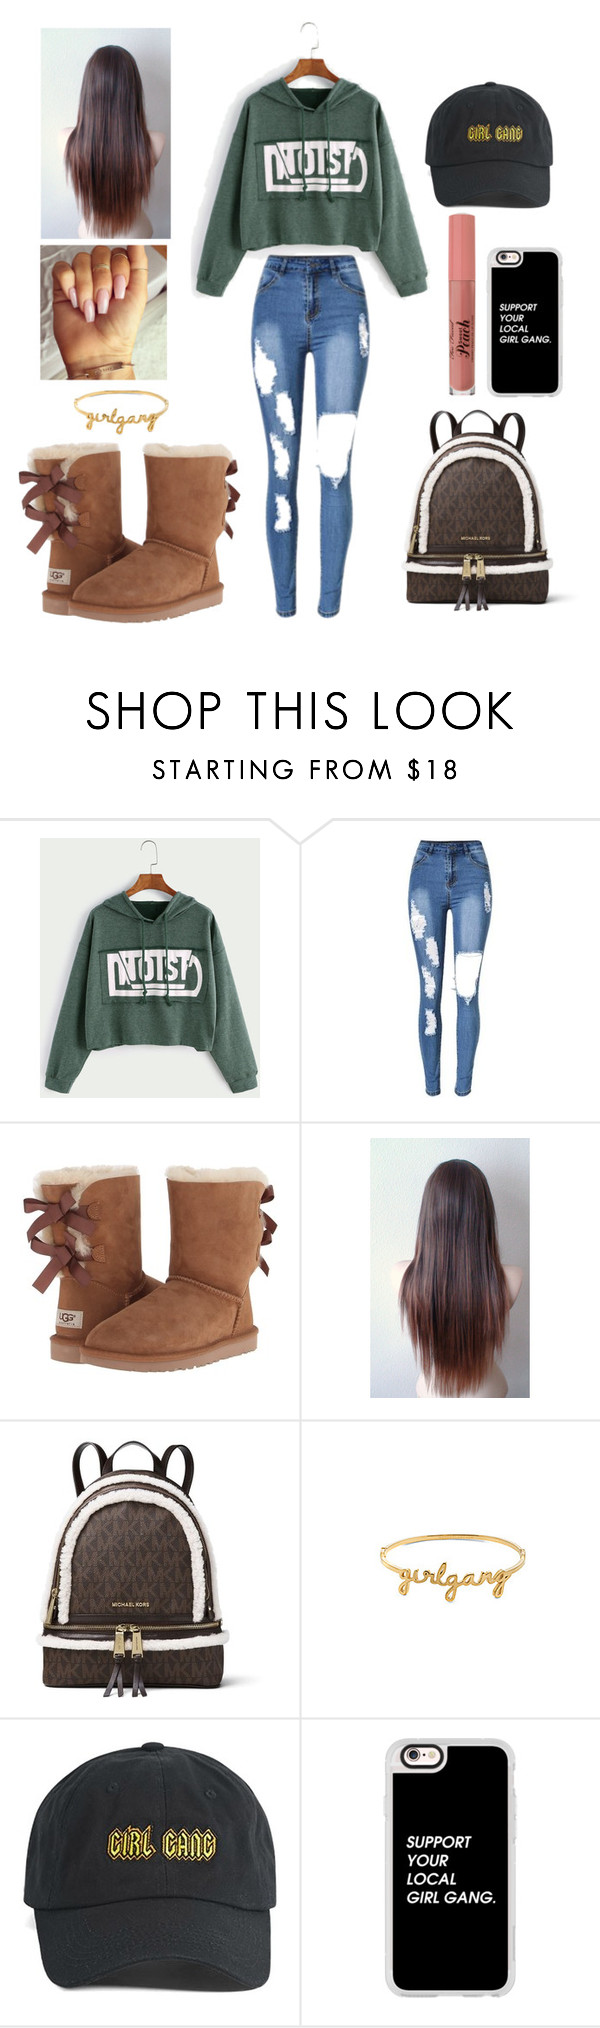 """#Girl Gang 😊👑😇💎"" by missmka on Polyvore featuring UGG Australia, MICHAEL Michael Kors, Wanderlust + Co, Forever 21 and Casetify"